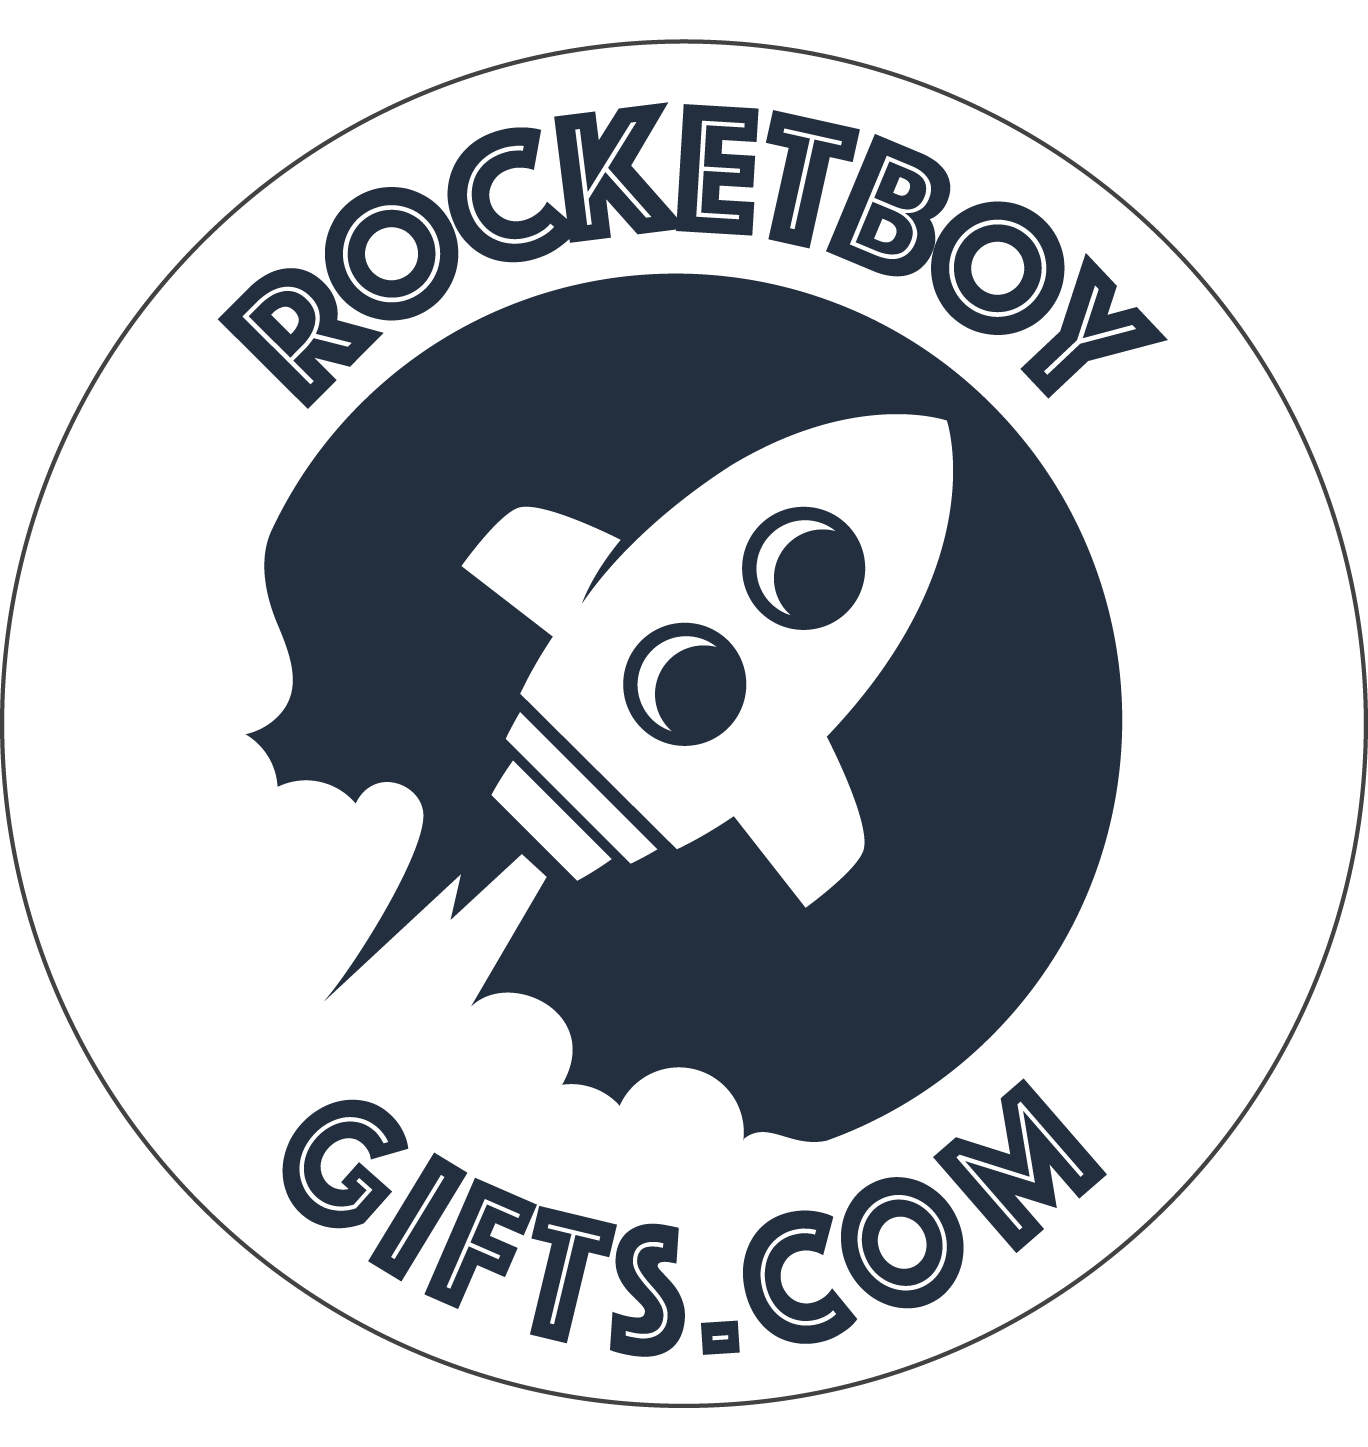 Rocketboy Gifts